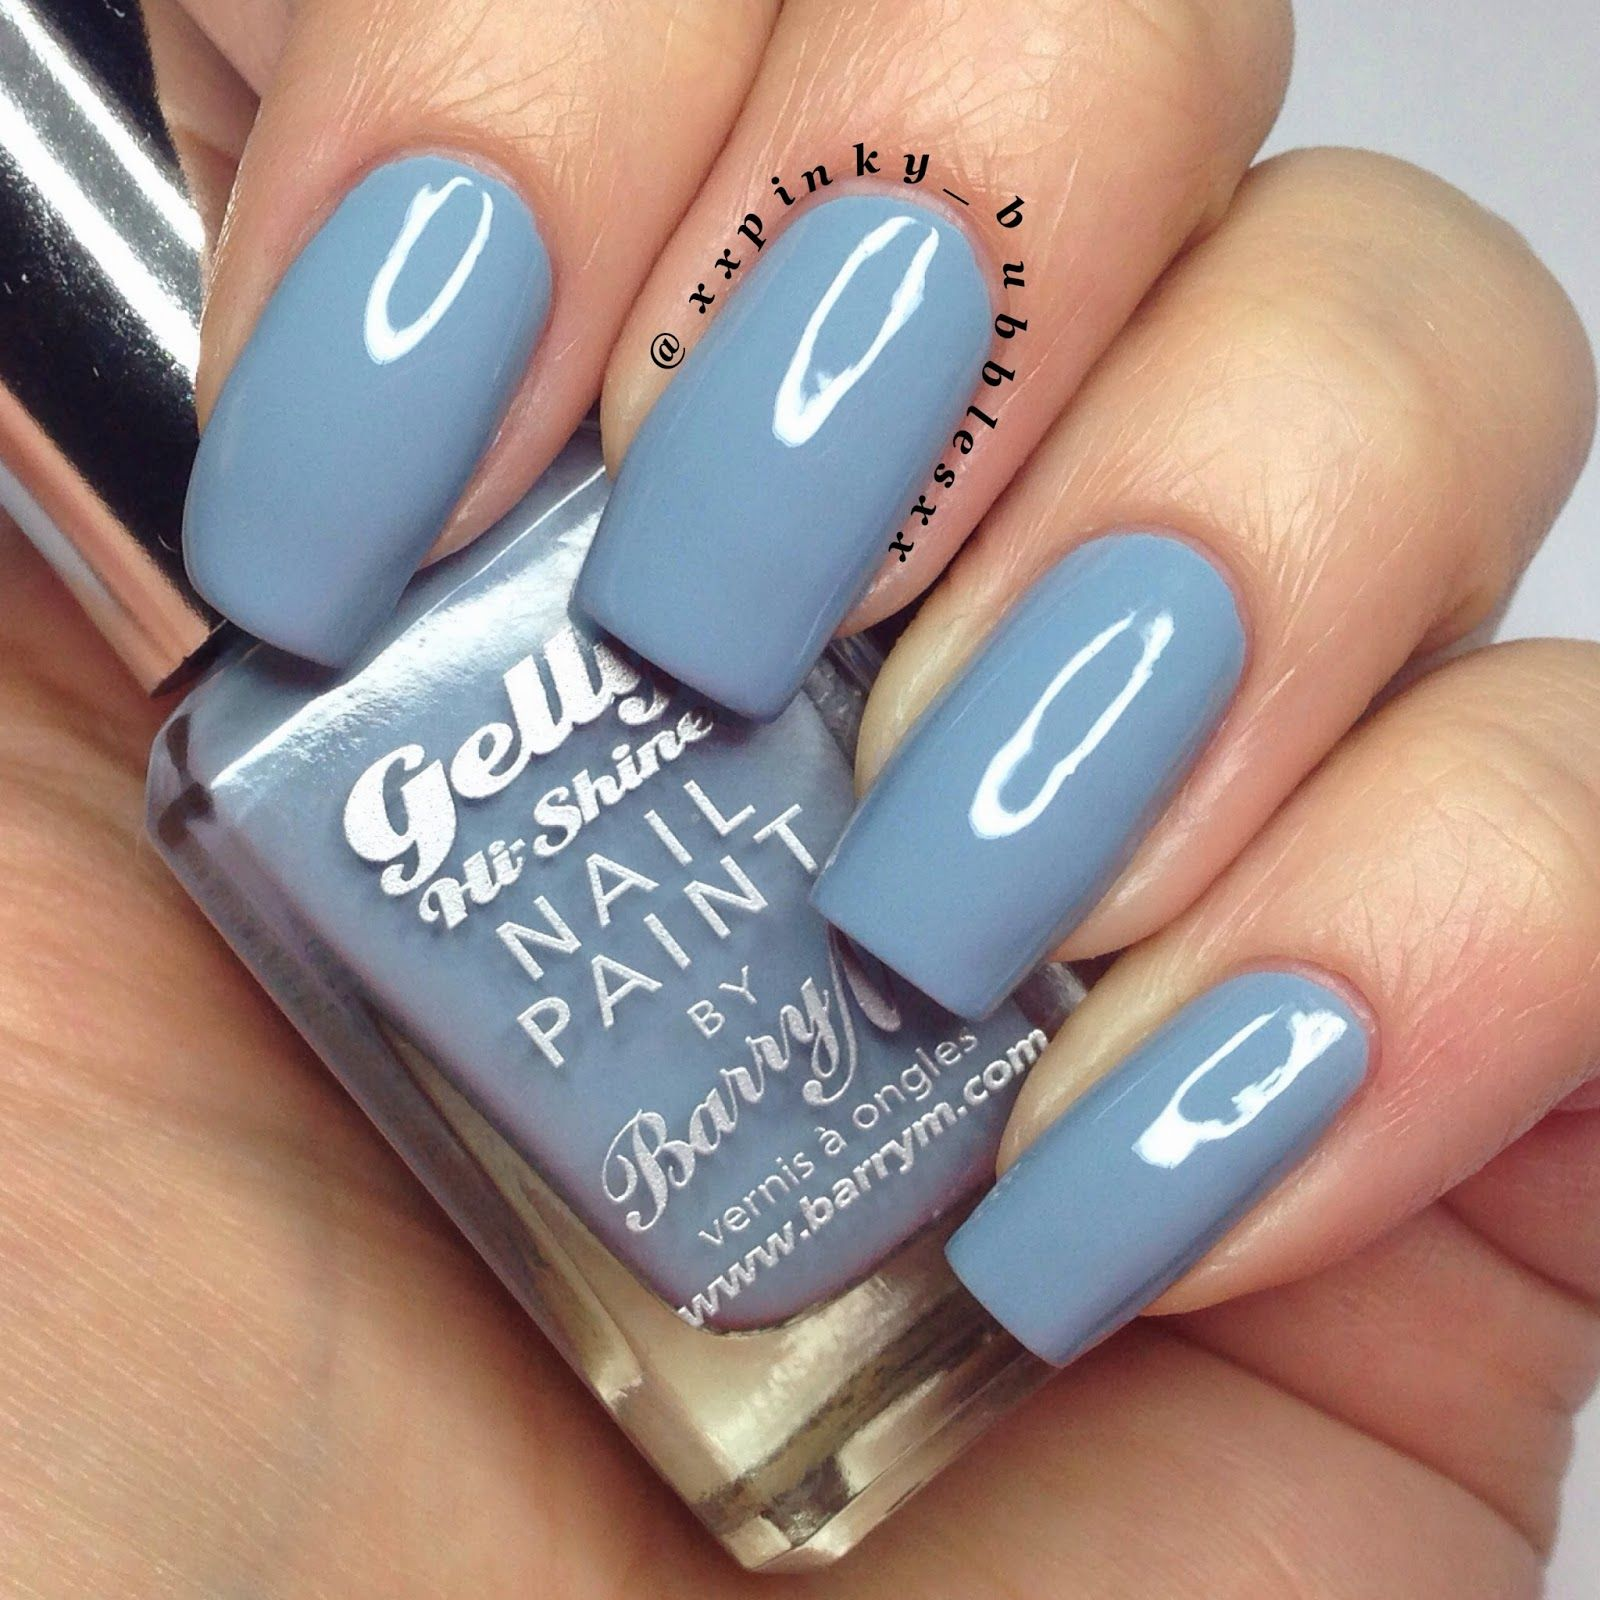 Barry M - Gelly Hi Shine - Elderberry 24